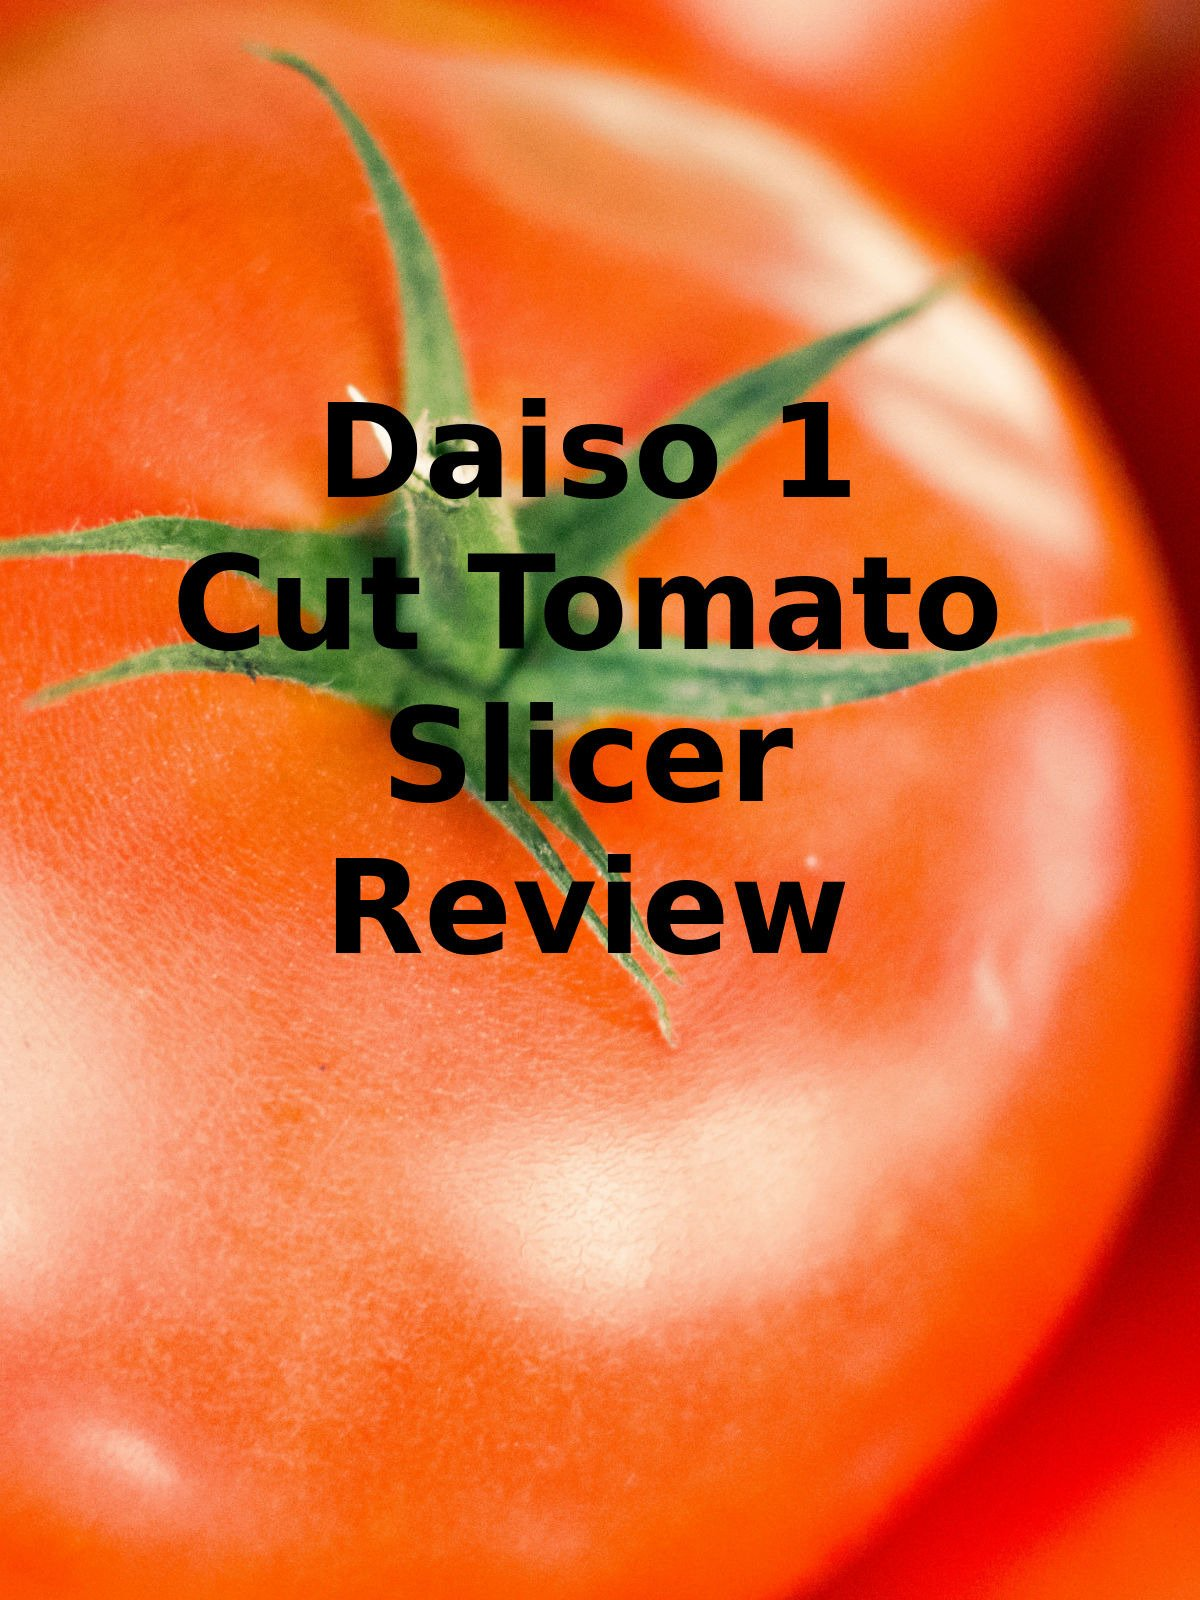 Review: Daiso 1 Cut Tomato Slicer Review